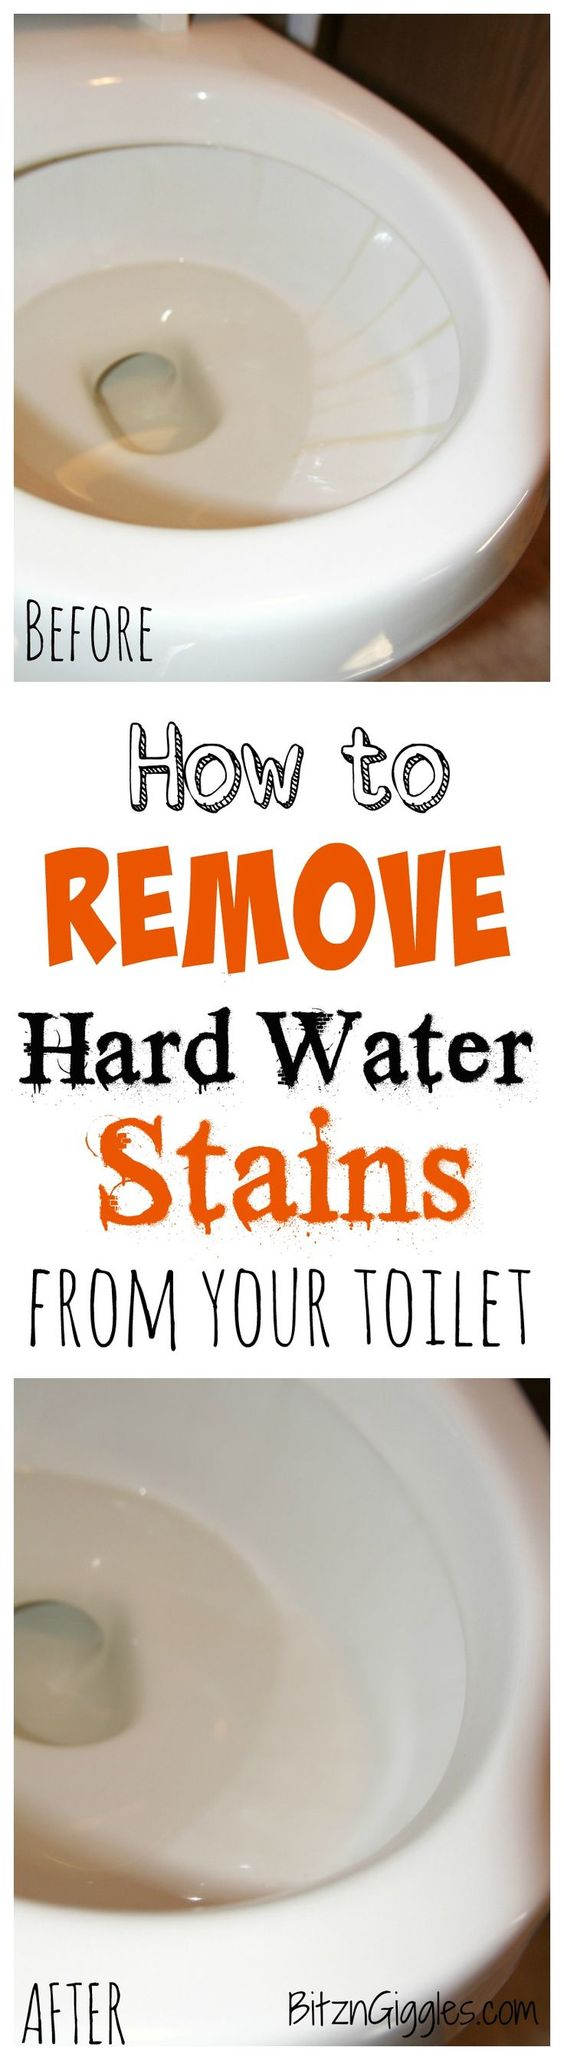 How To Remove Hard Water Stains From Your Toilet